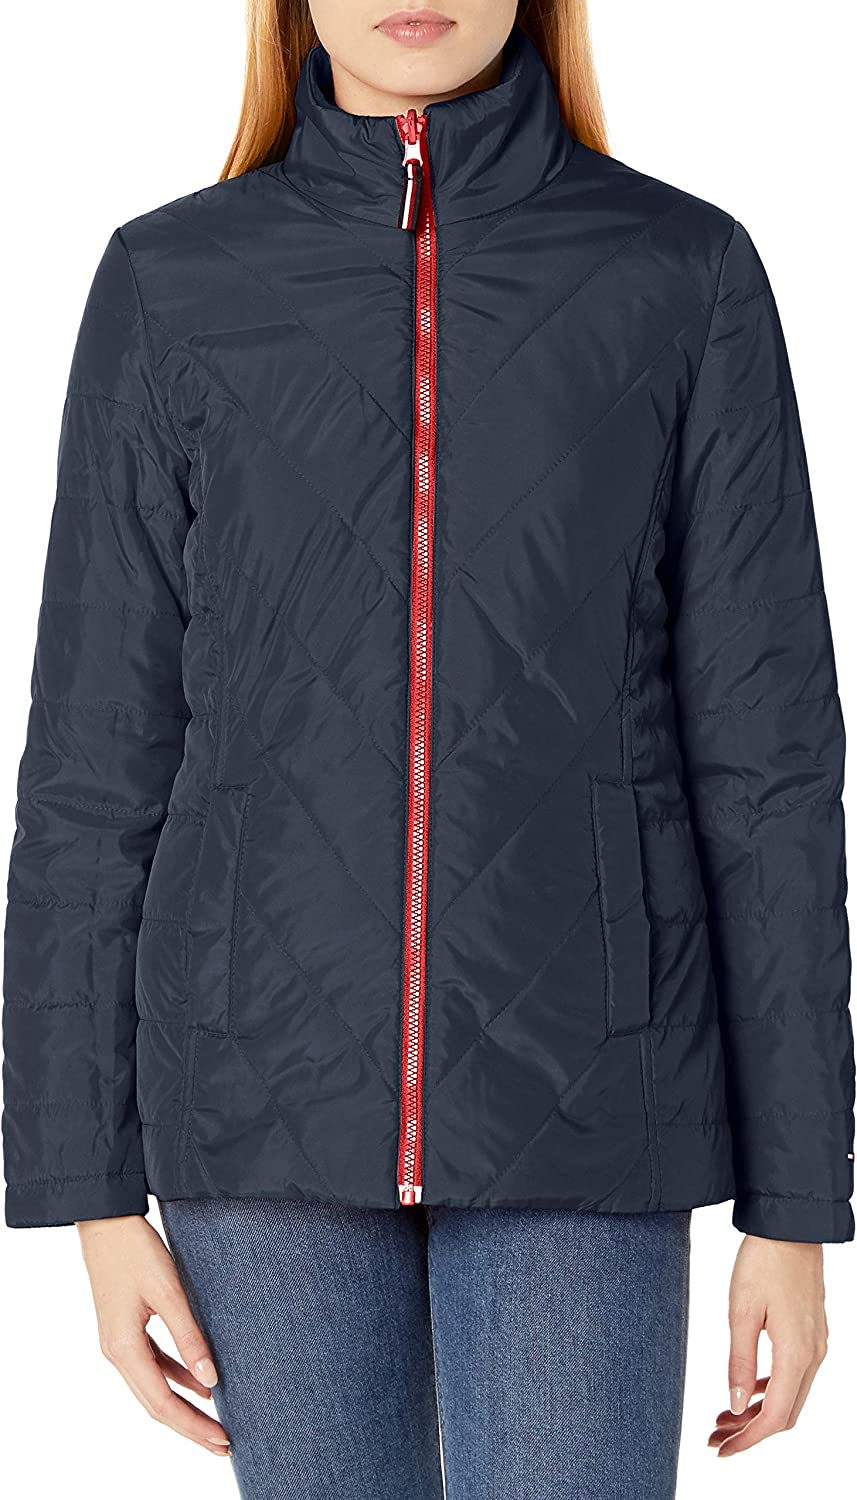 Tommy Hilfiger Women's 3-in-1 Systems Jacket